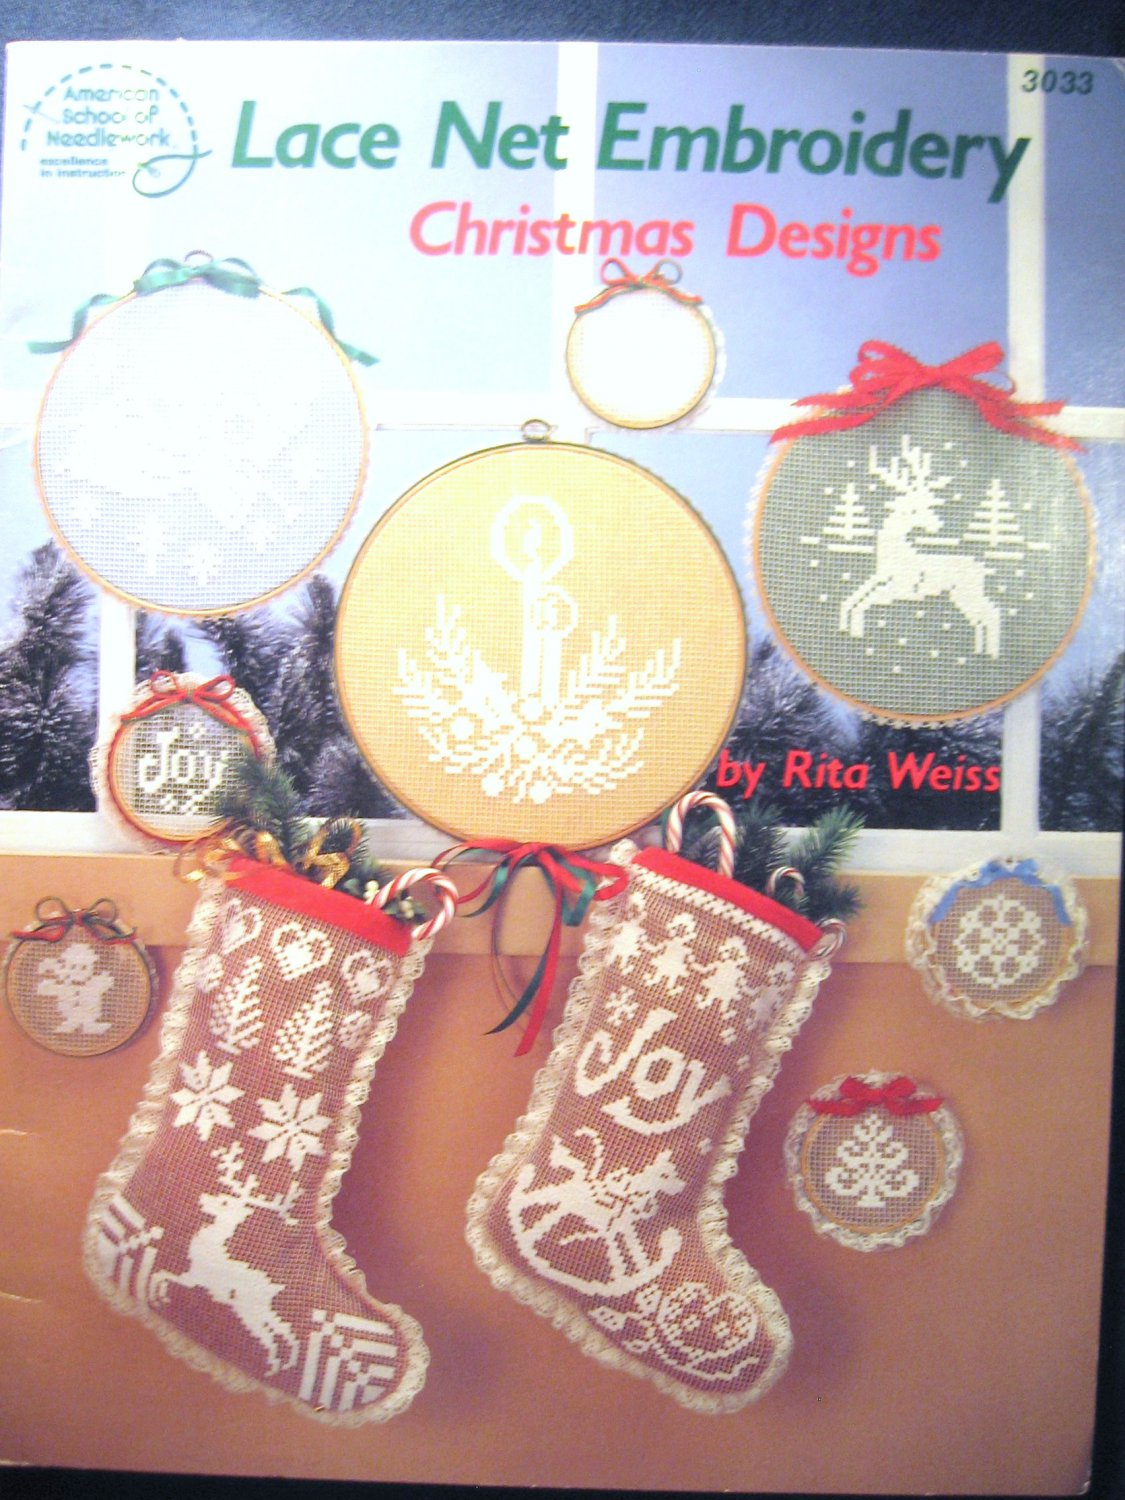 Lace Net Embroidery Christmas Designs Stockings, Reindeer Angel